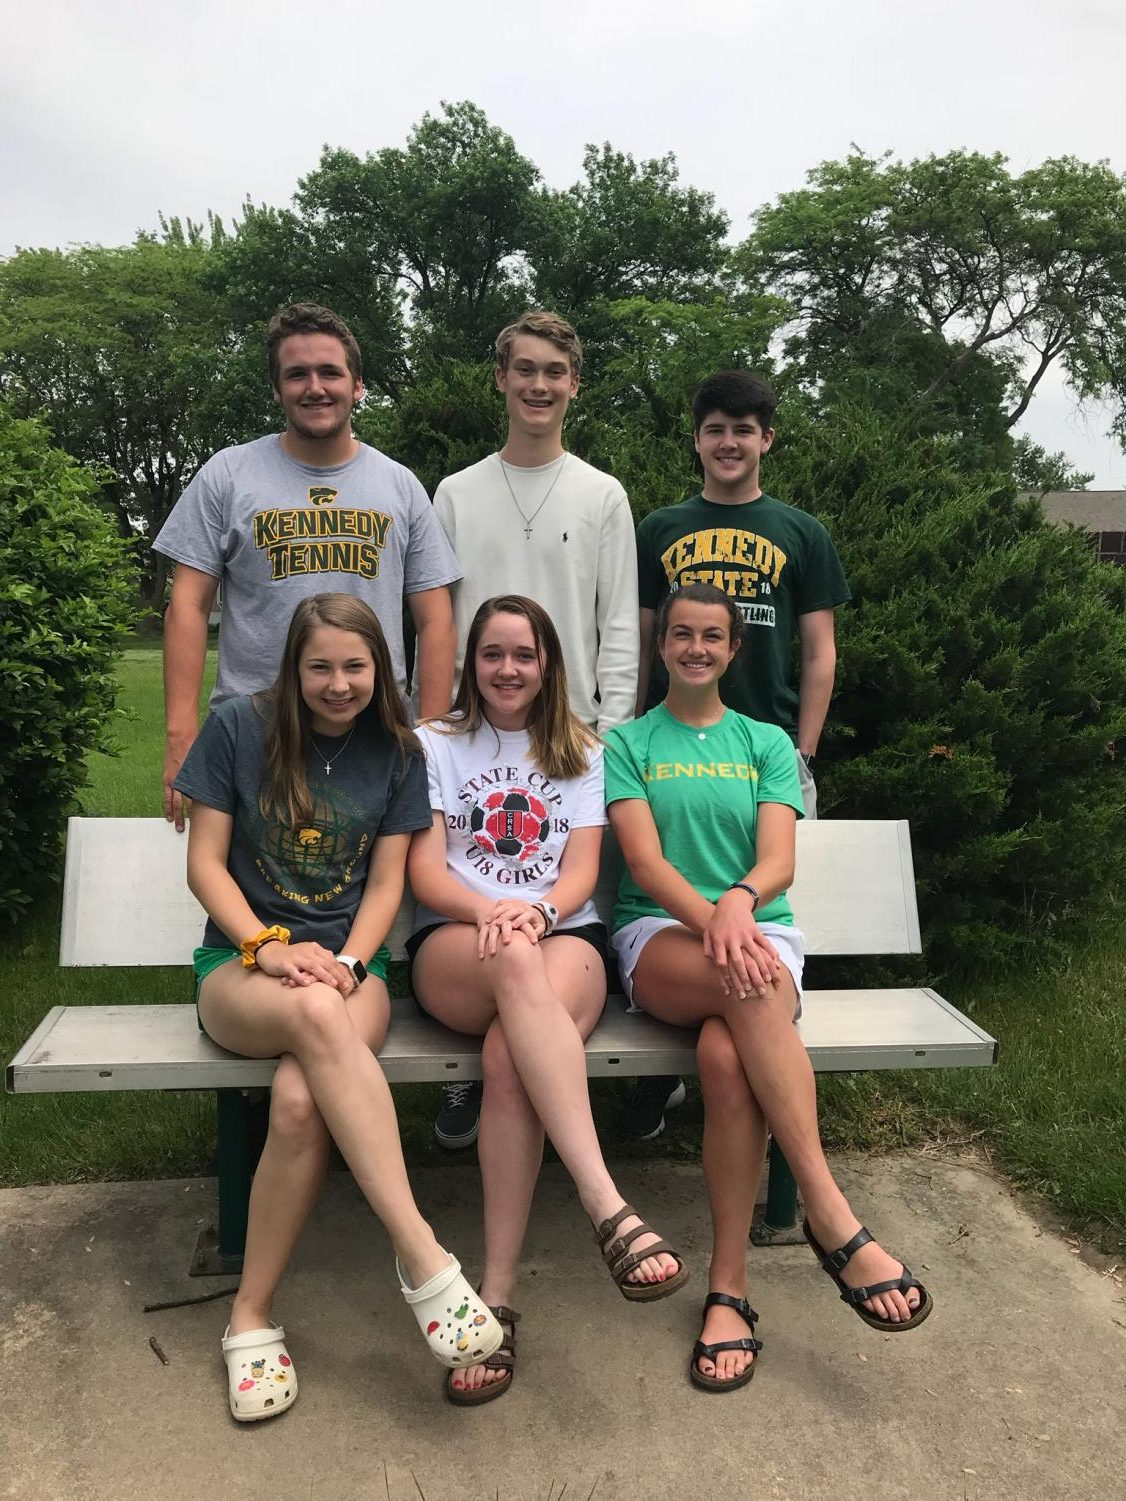 Kennedy student Government officers 2018-2019 school year. top left Noah Gleode, Charles Haefner, Louie Ervin. Bottom right Kia Johnson, Rylee Ervin, Lauryn Vaske.